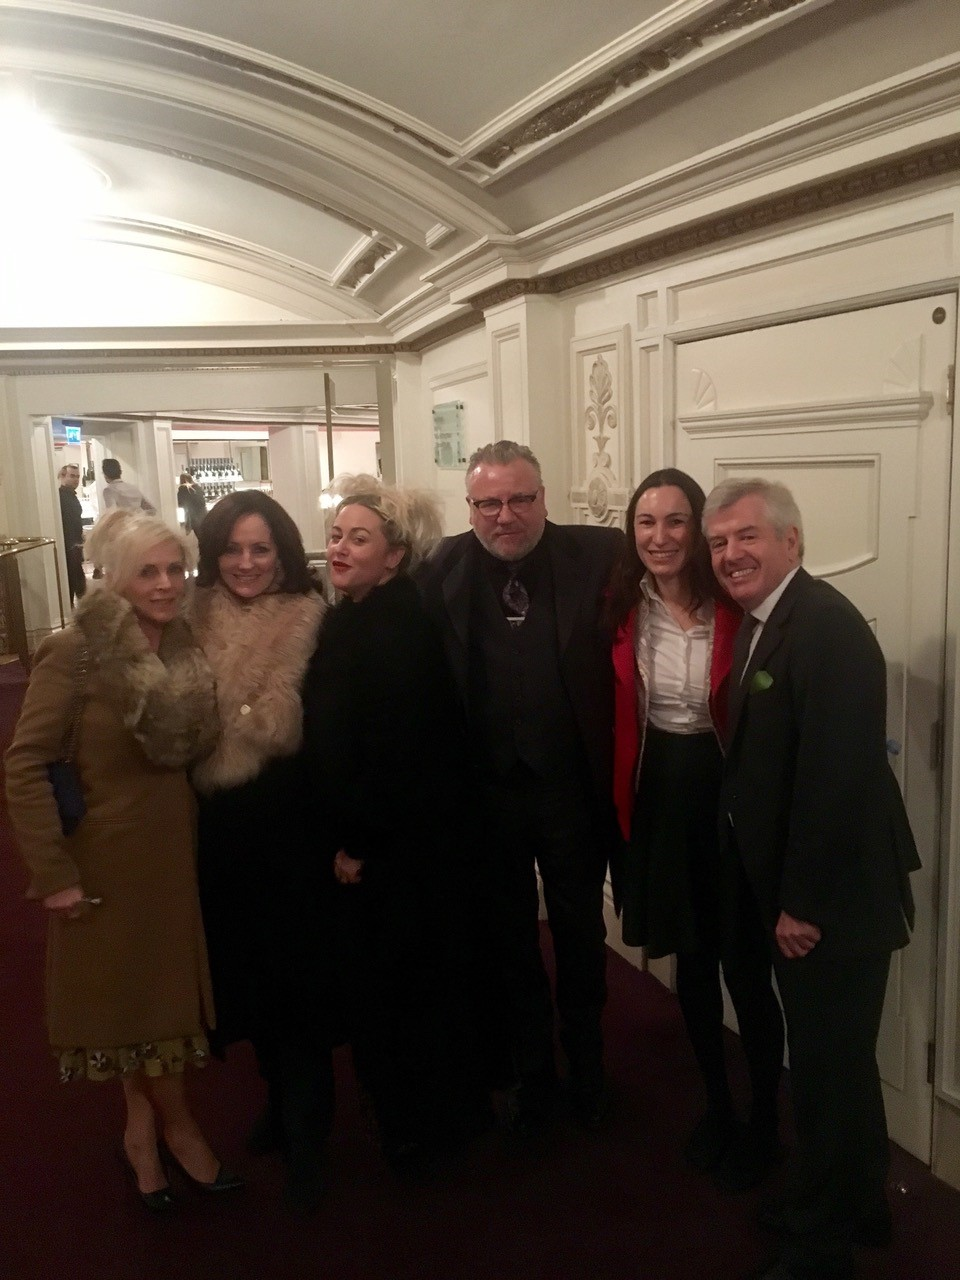 Another convert to opera! Ray Winston and family left-to-right Elaine Winston,Jacquie Brunjes,Jamie Winston, Ray Winston, Cressida Pollack CEO of ENO, Dr Harry Brunjes